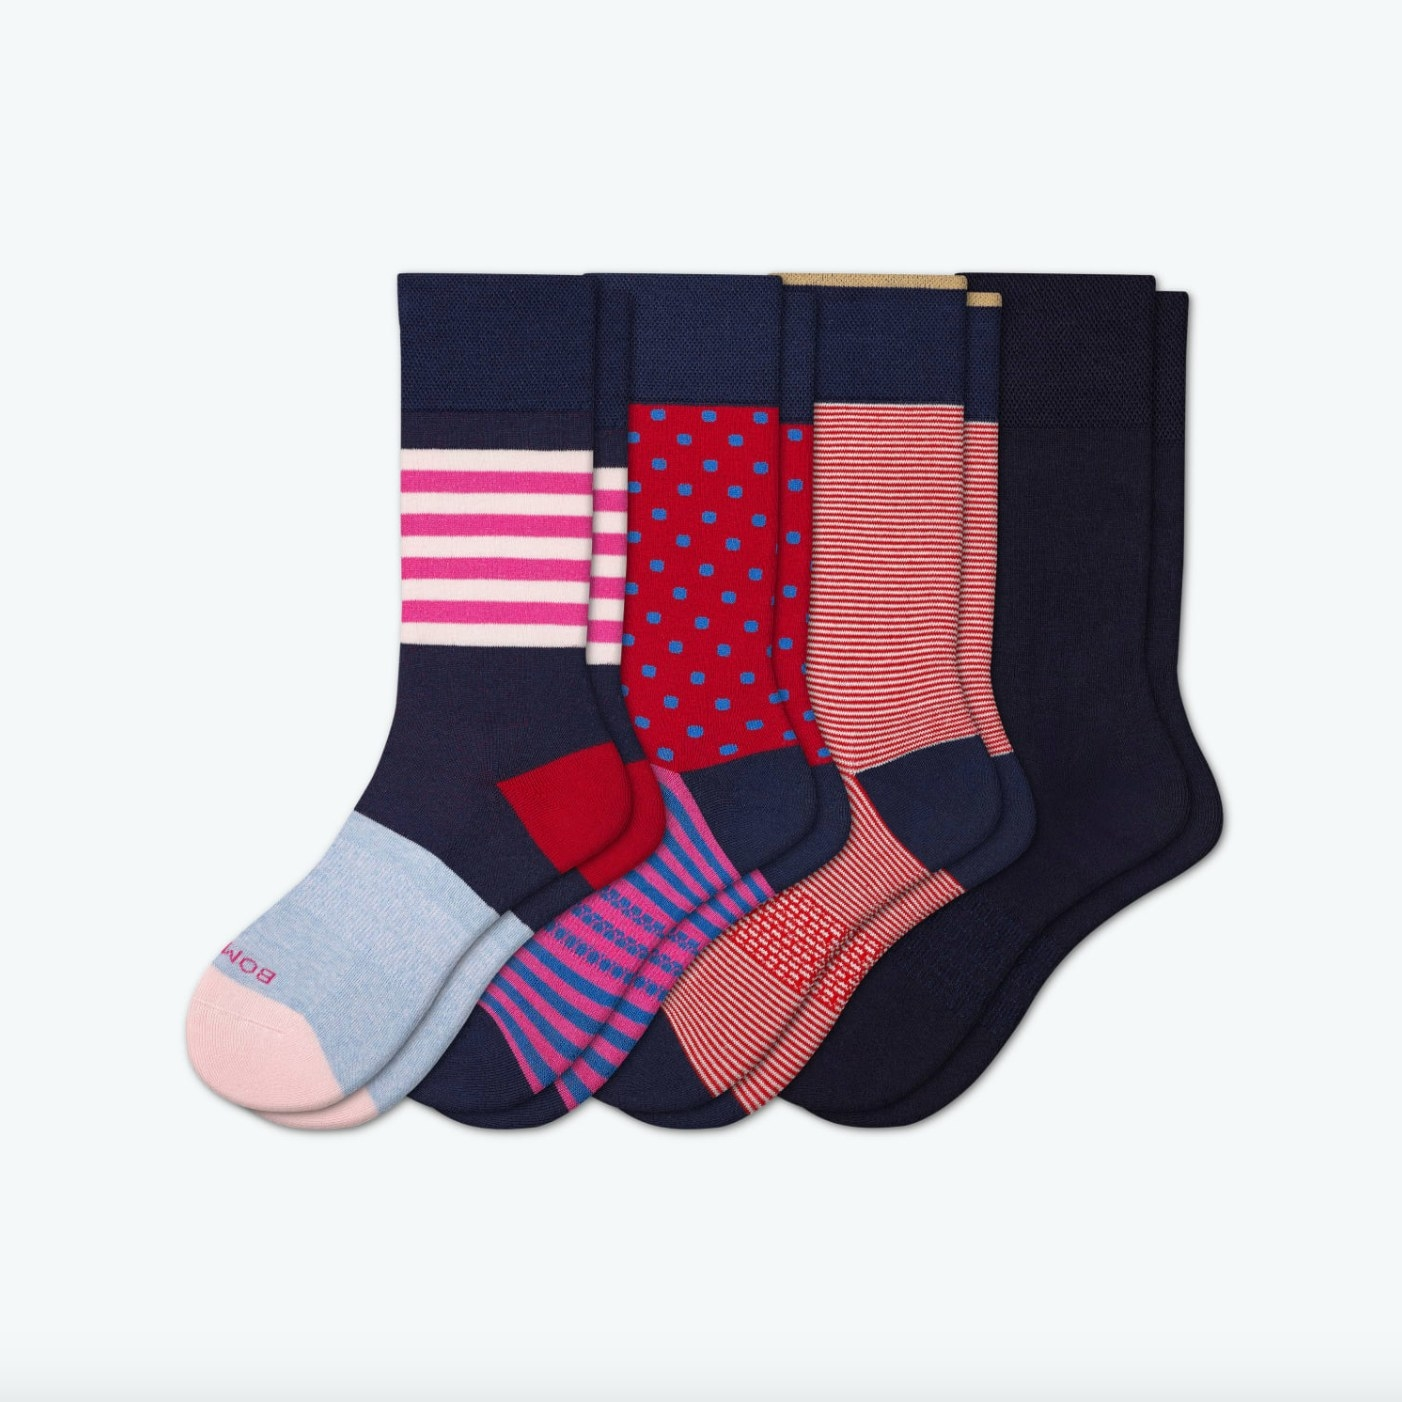 The Bombas men's dress socks in shades of red